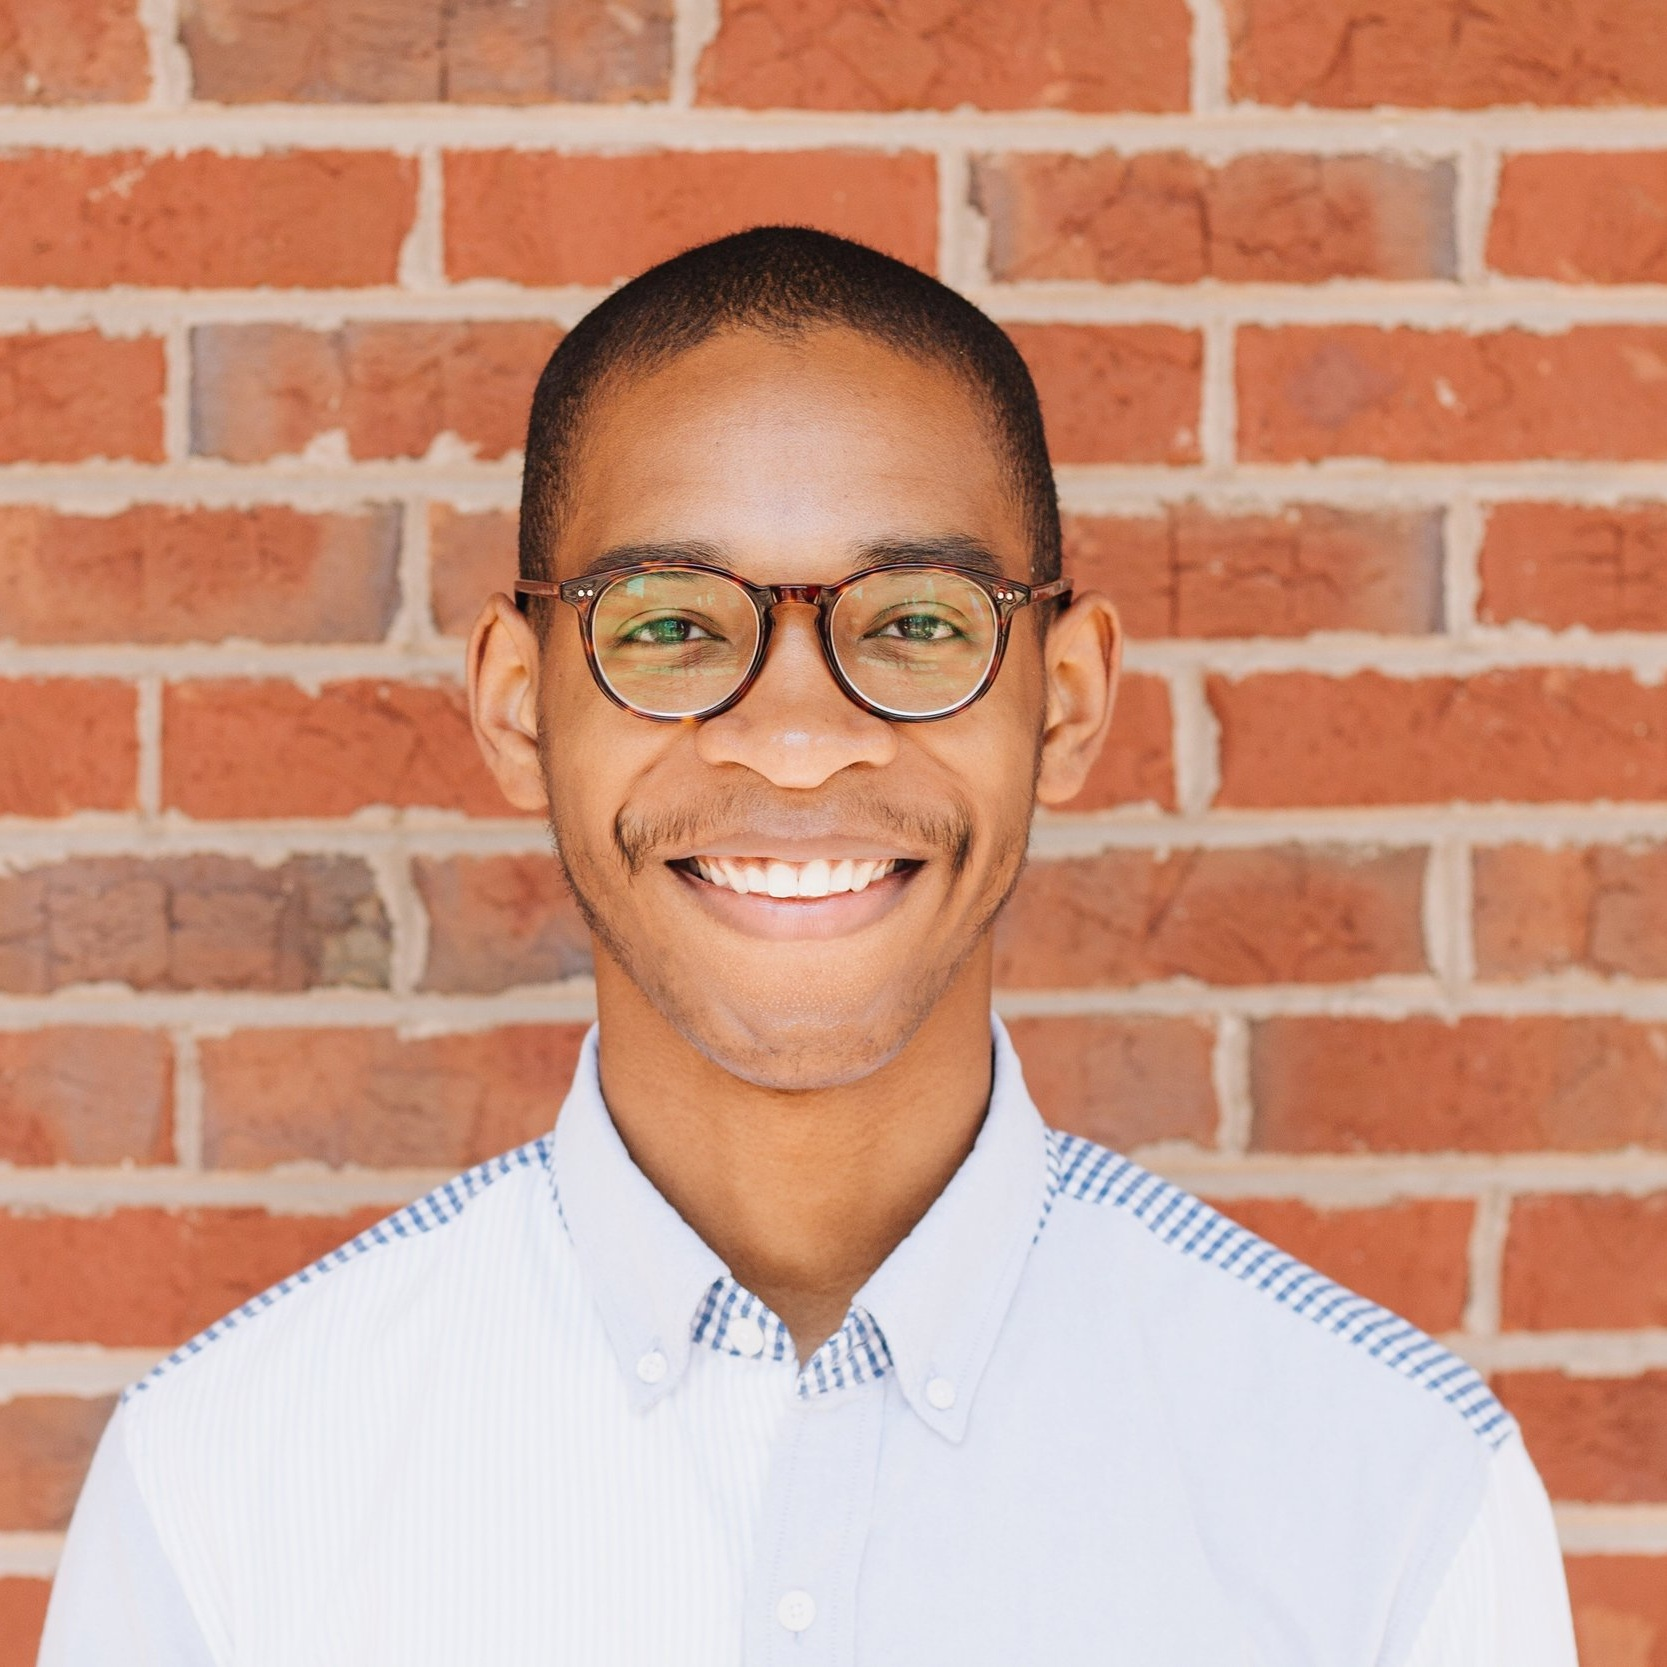 Meet Nino. - Nino is a student at Tuskegee University, and will graduate in 2022 with a major in Architecture. He is passionate about sustainability and furniture design and believes inclusivity and education are vital to the future of original design.